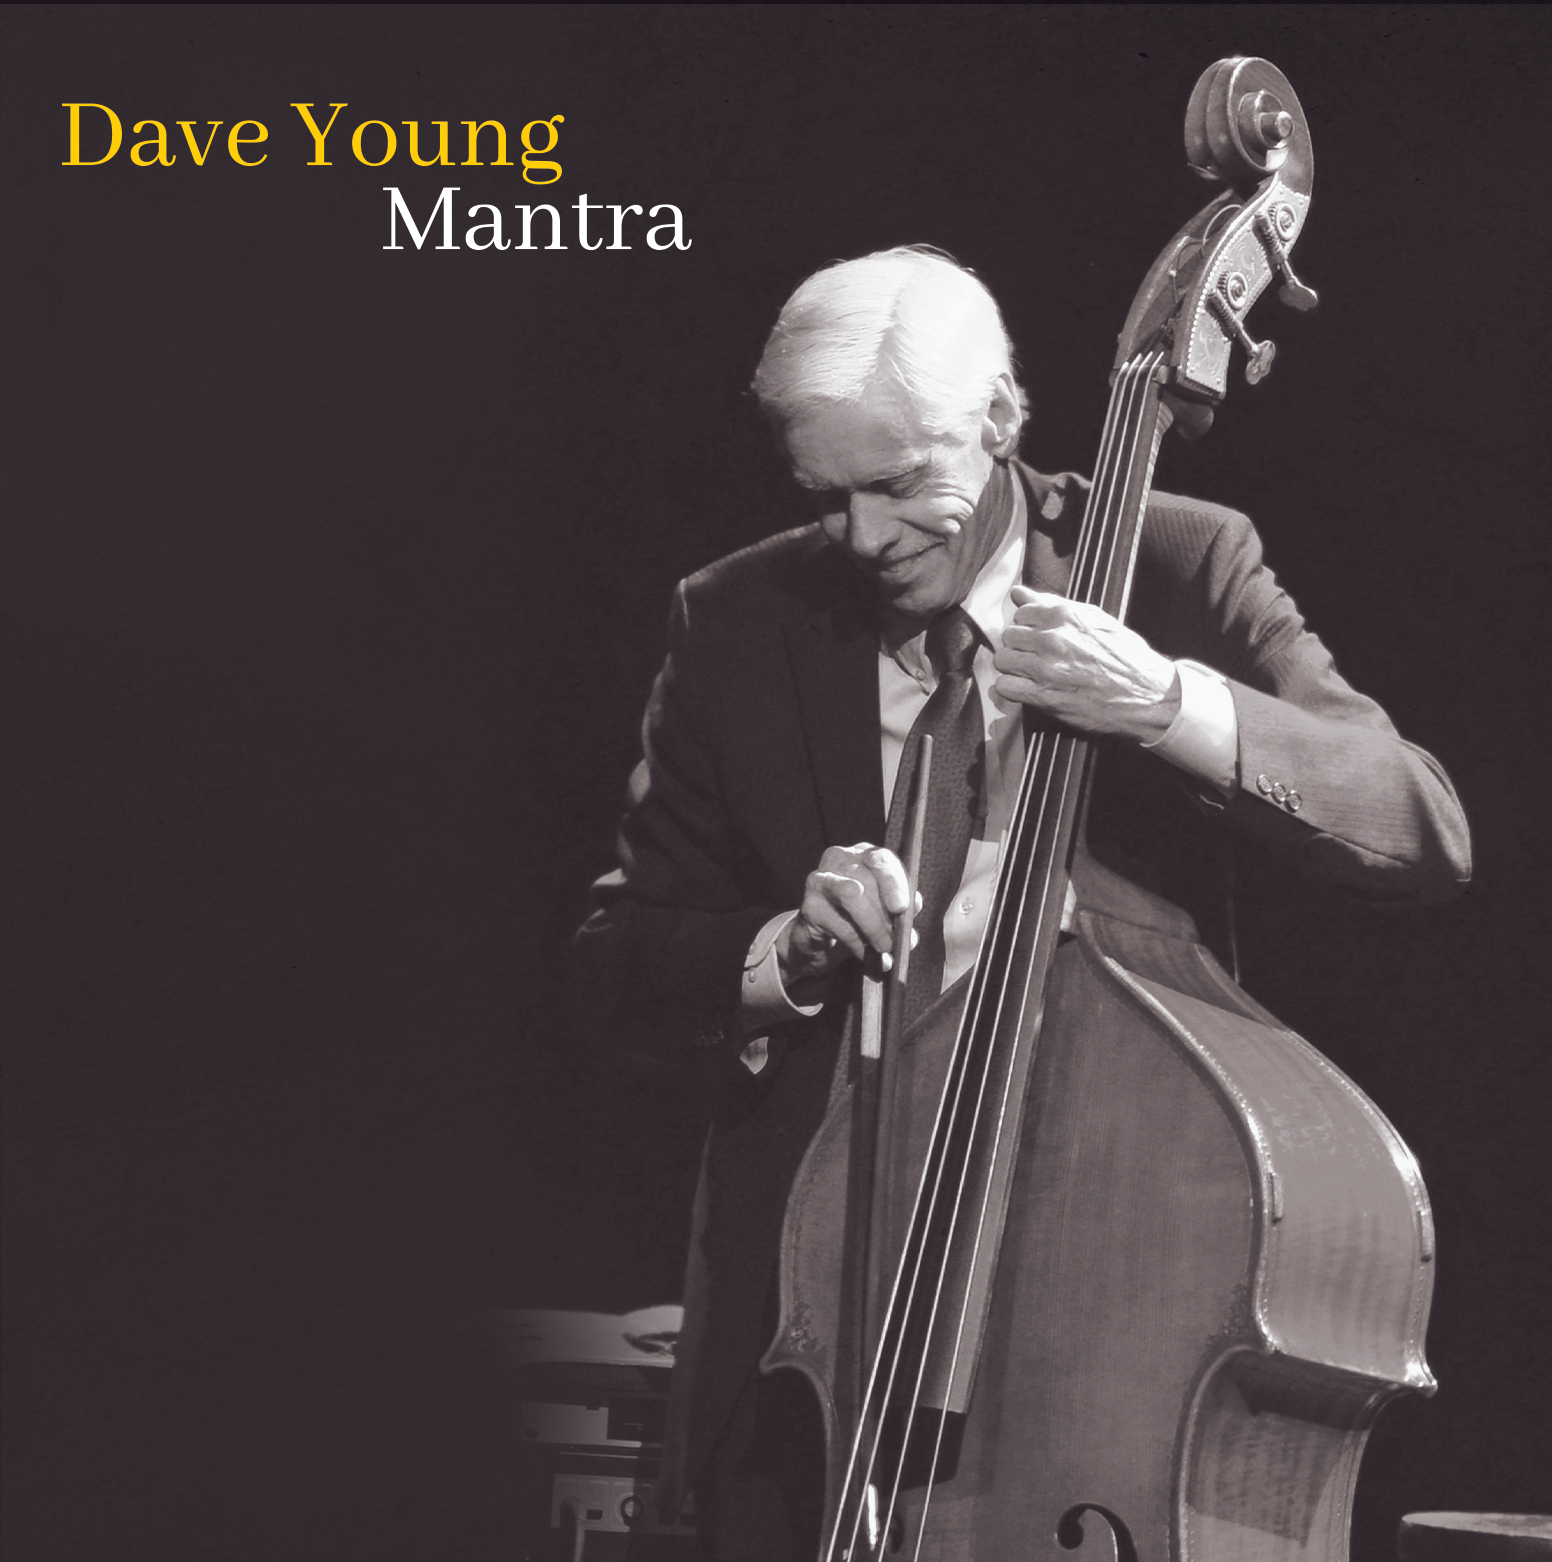 NEW RELEASE: Bassist Dave Young Presents New Record Mantra, due out November 5 via Modica Music